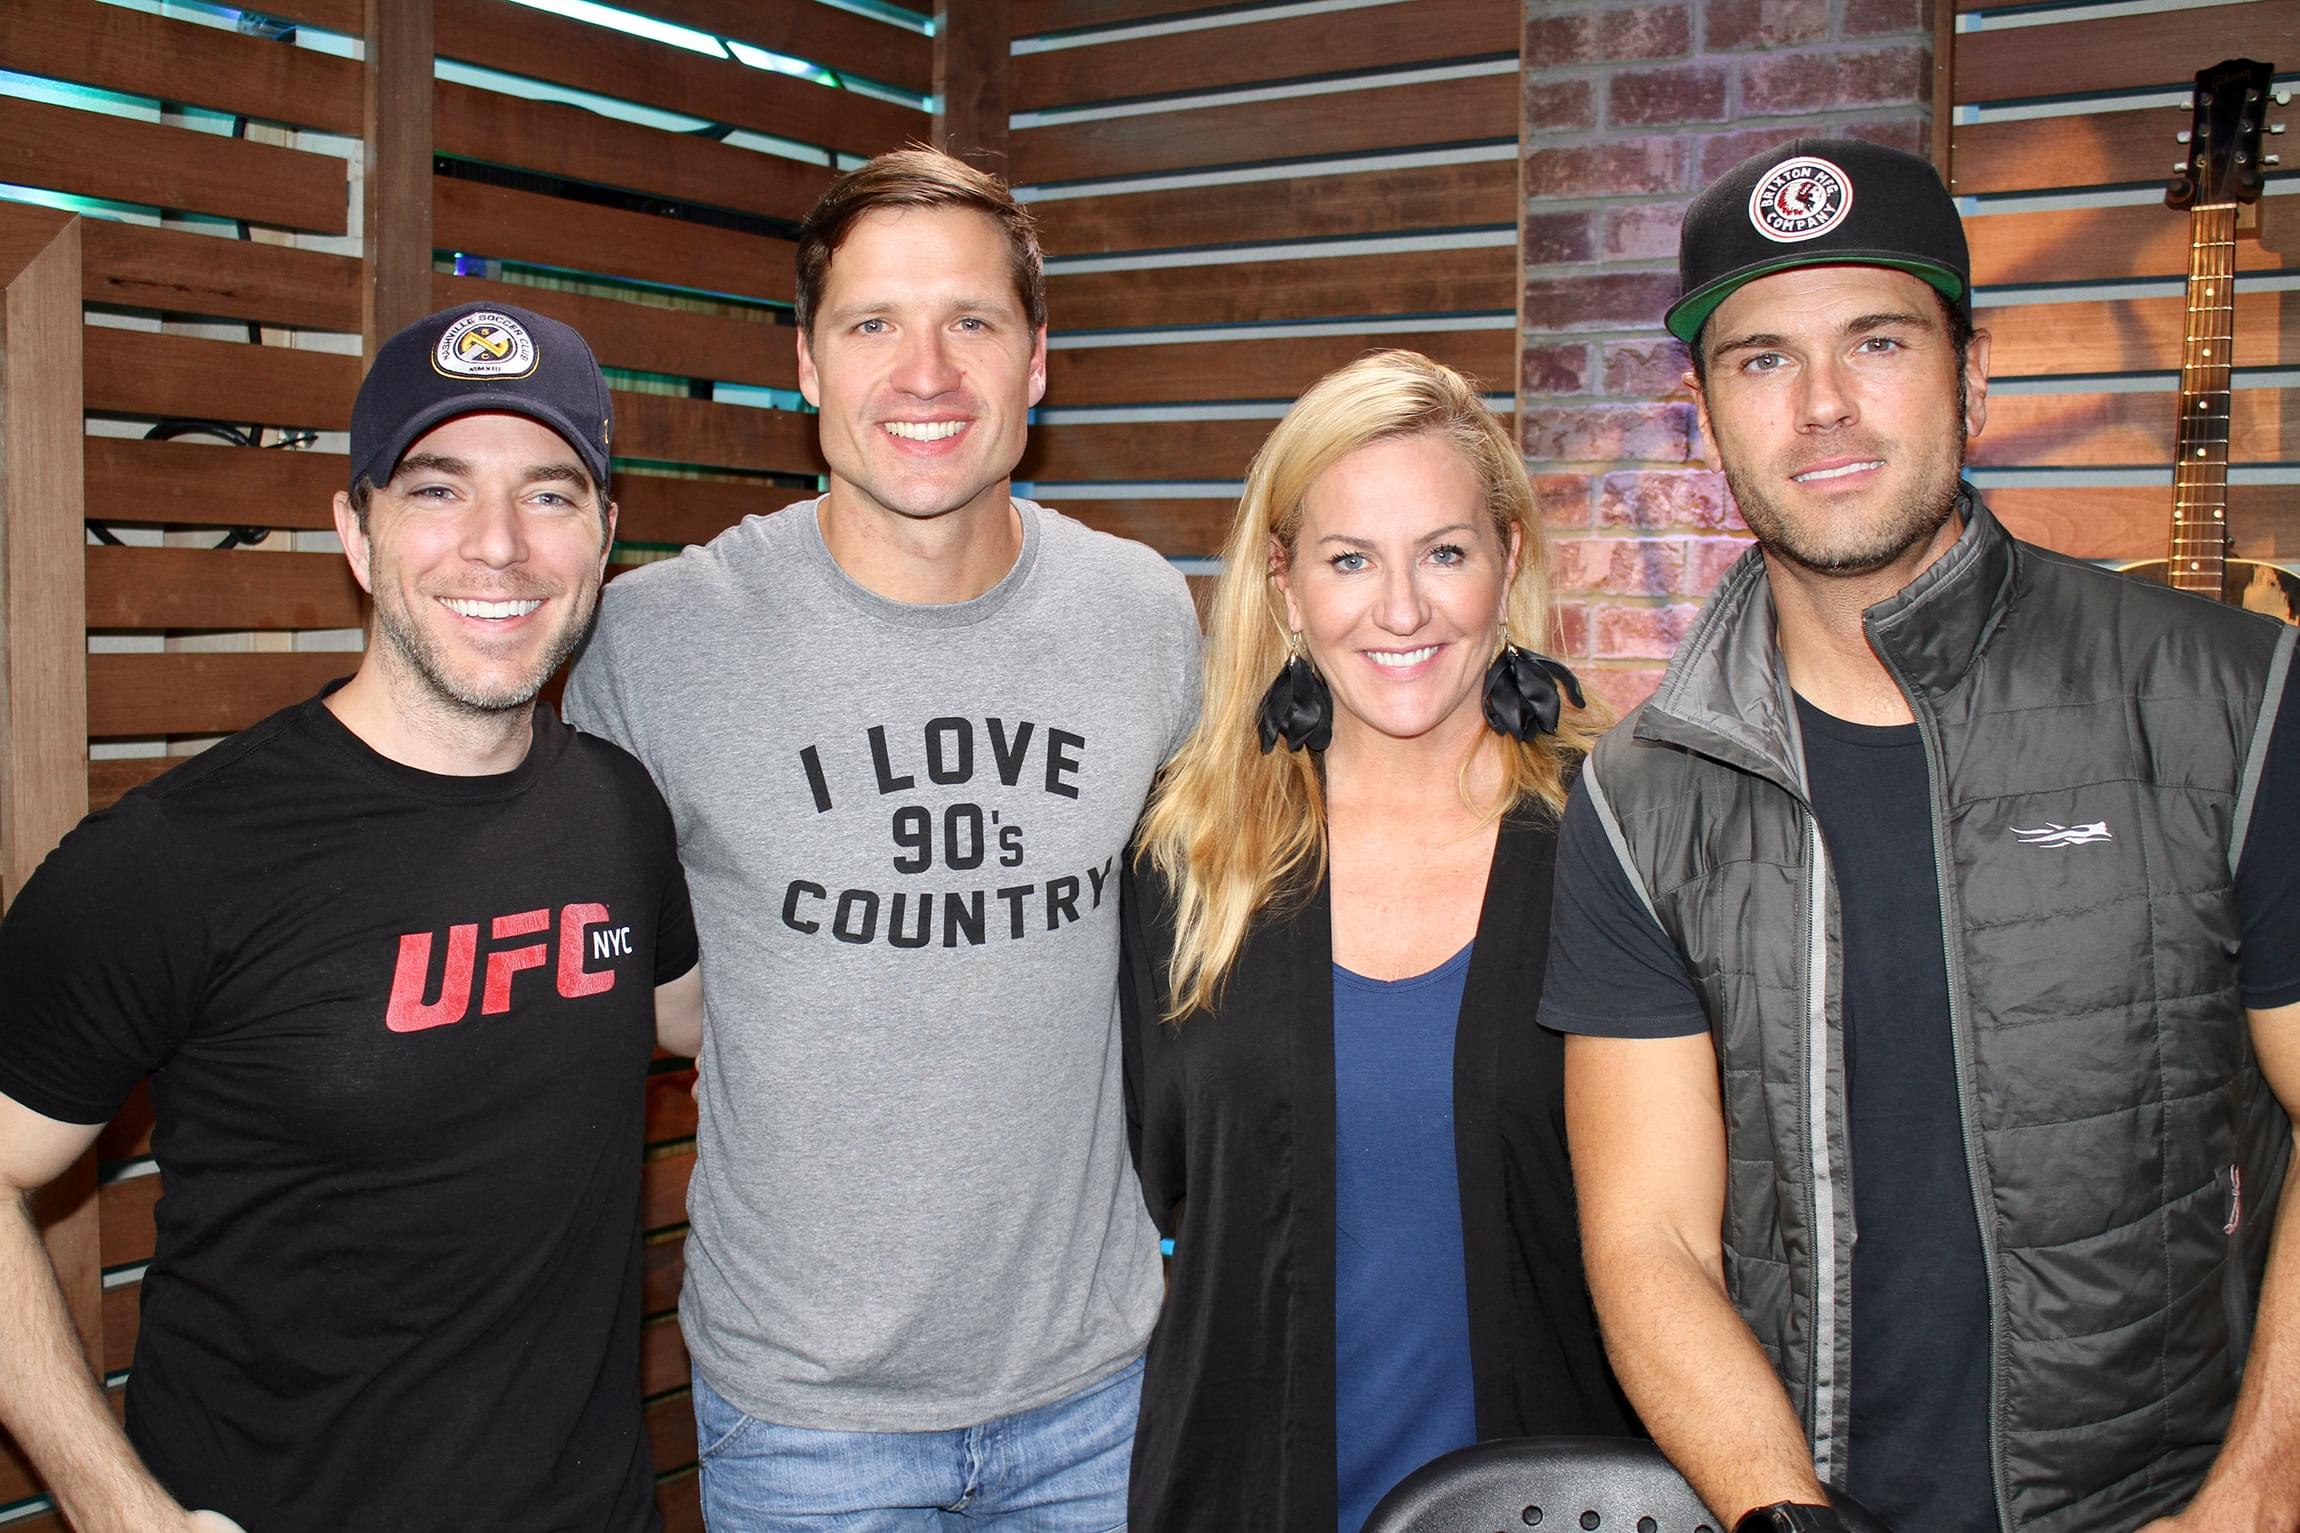 """Walker Hayes Performs """"90's Country,"""" Plays Unreleased Verse That Didn't Make the Cut, Talks Meeting Chuck Wicks Years Ago & MORE"""